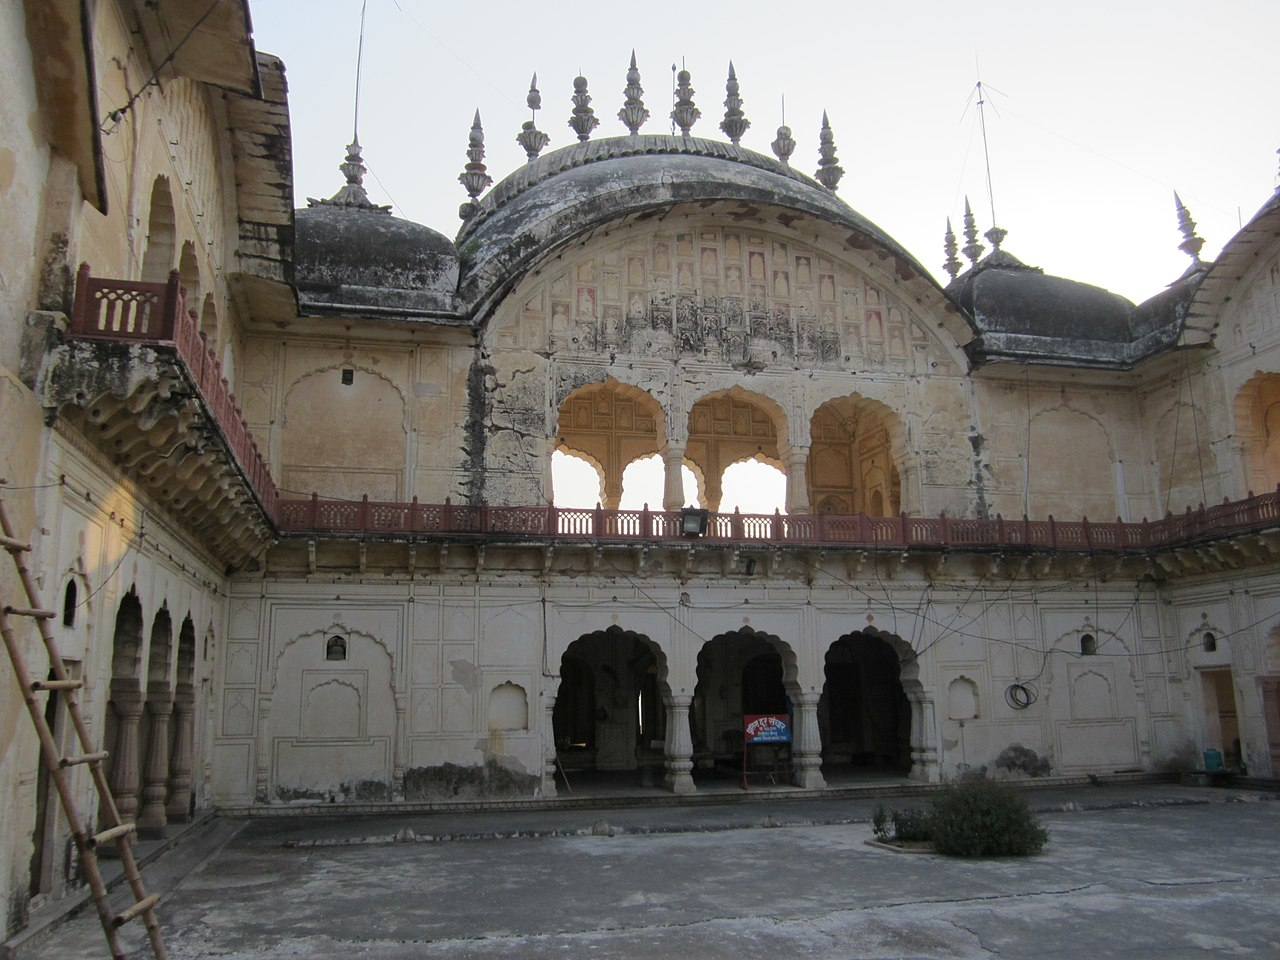 Architecture of the Alwar Fort, Rajasthan